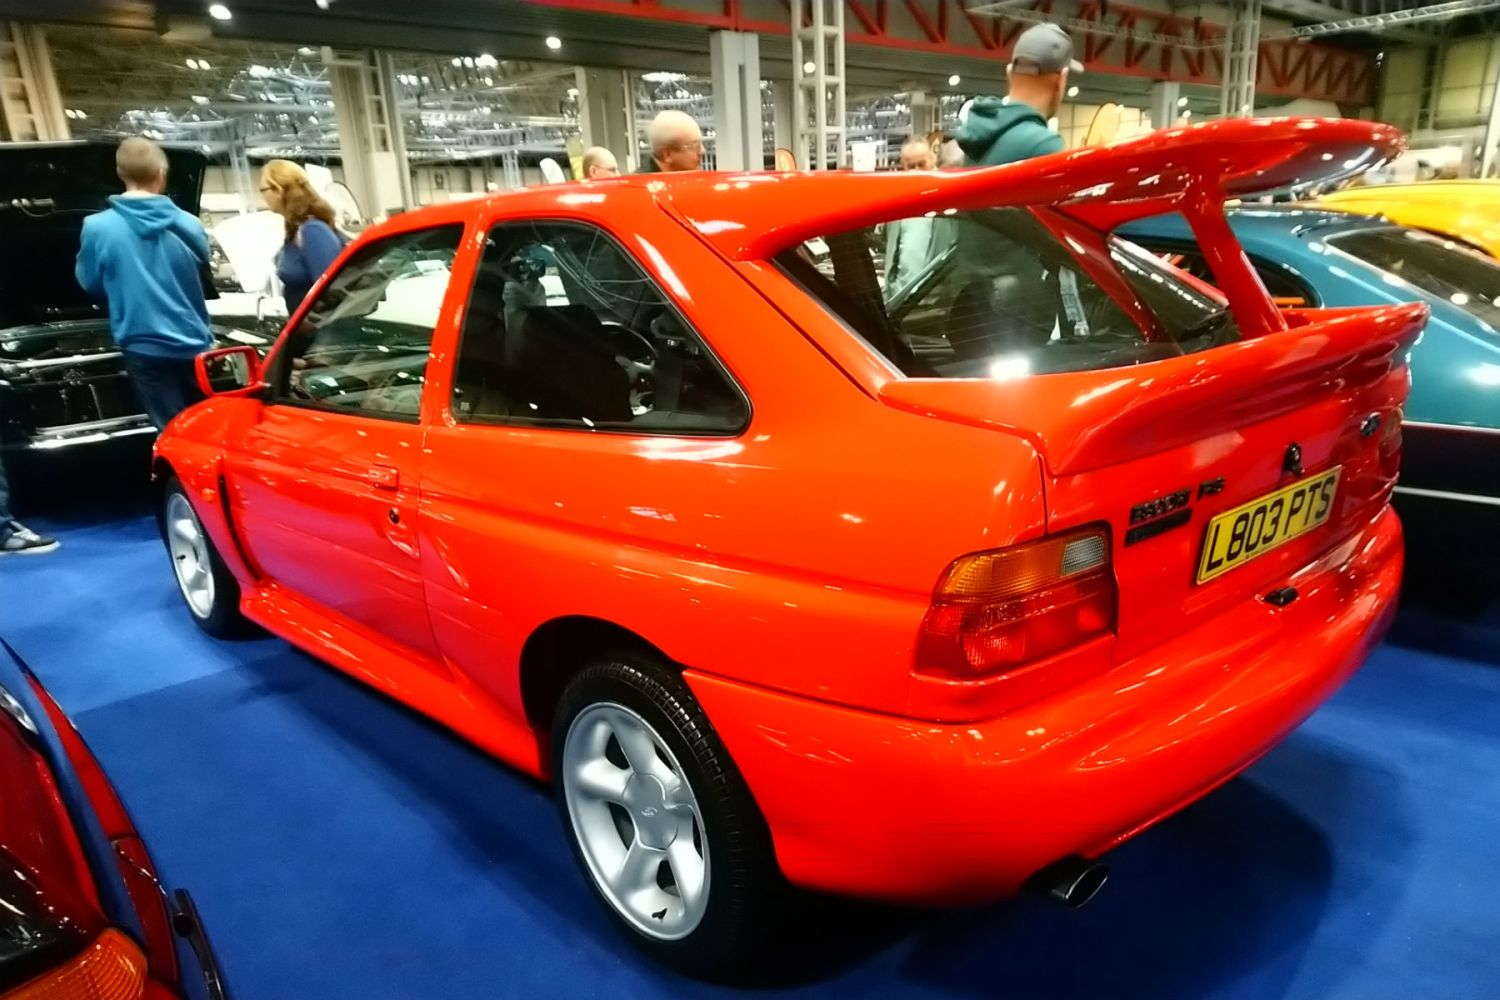 Ford Escort RS Cosworth at the 2018 NEC Classic Motor Show